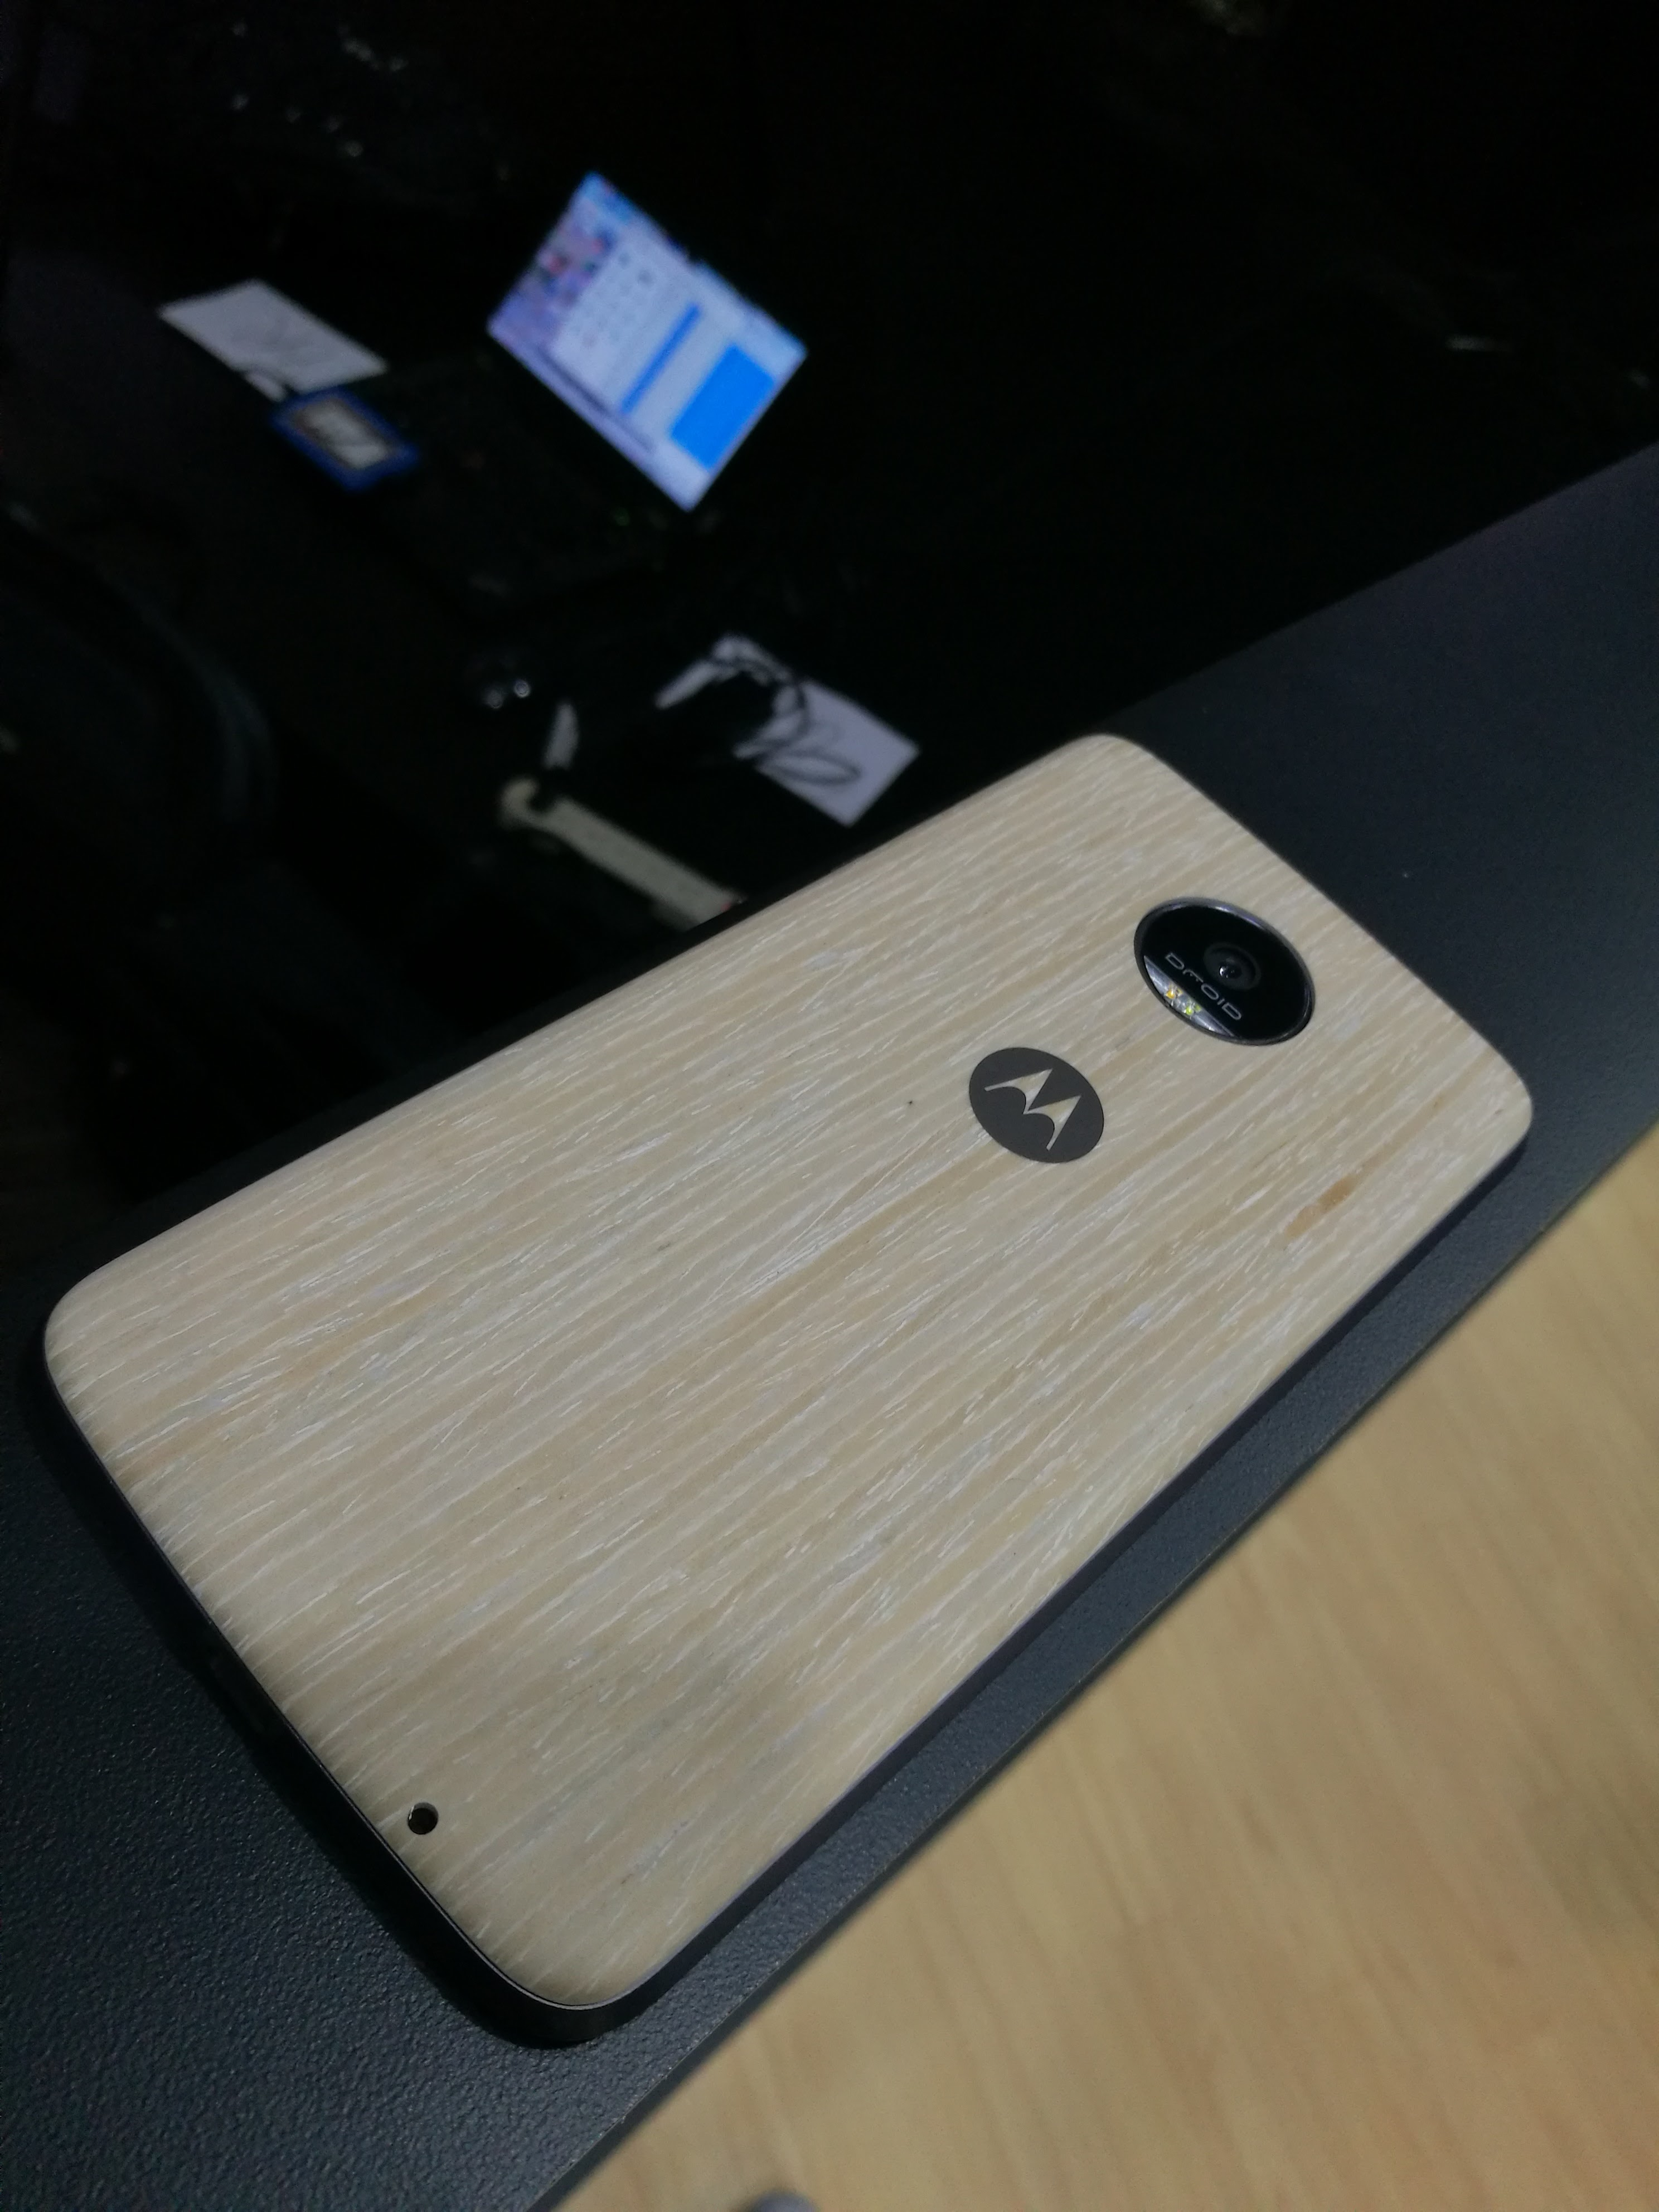 The Moto Z Force with a case on it.